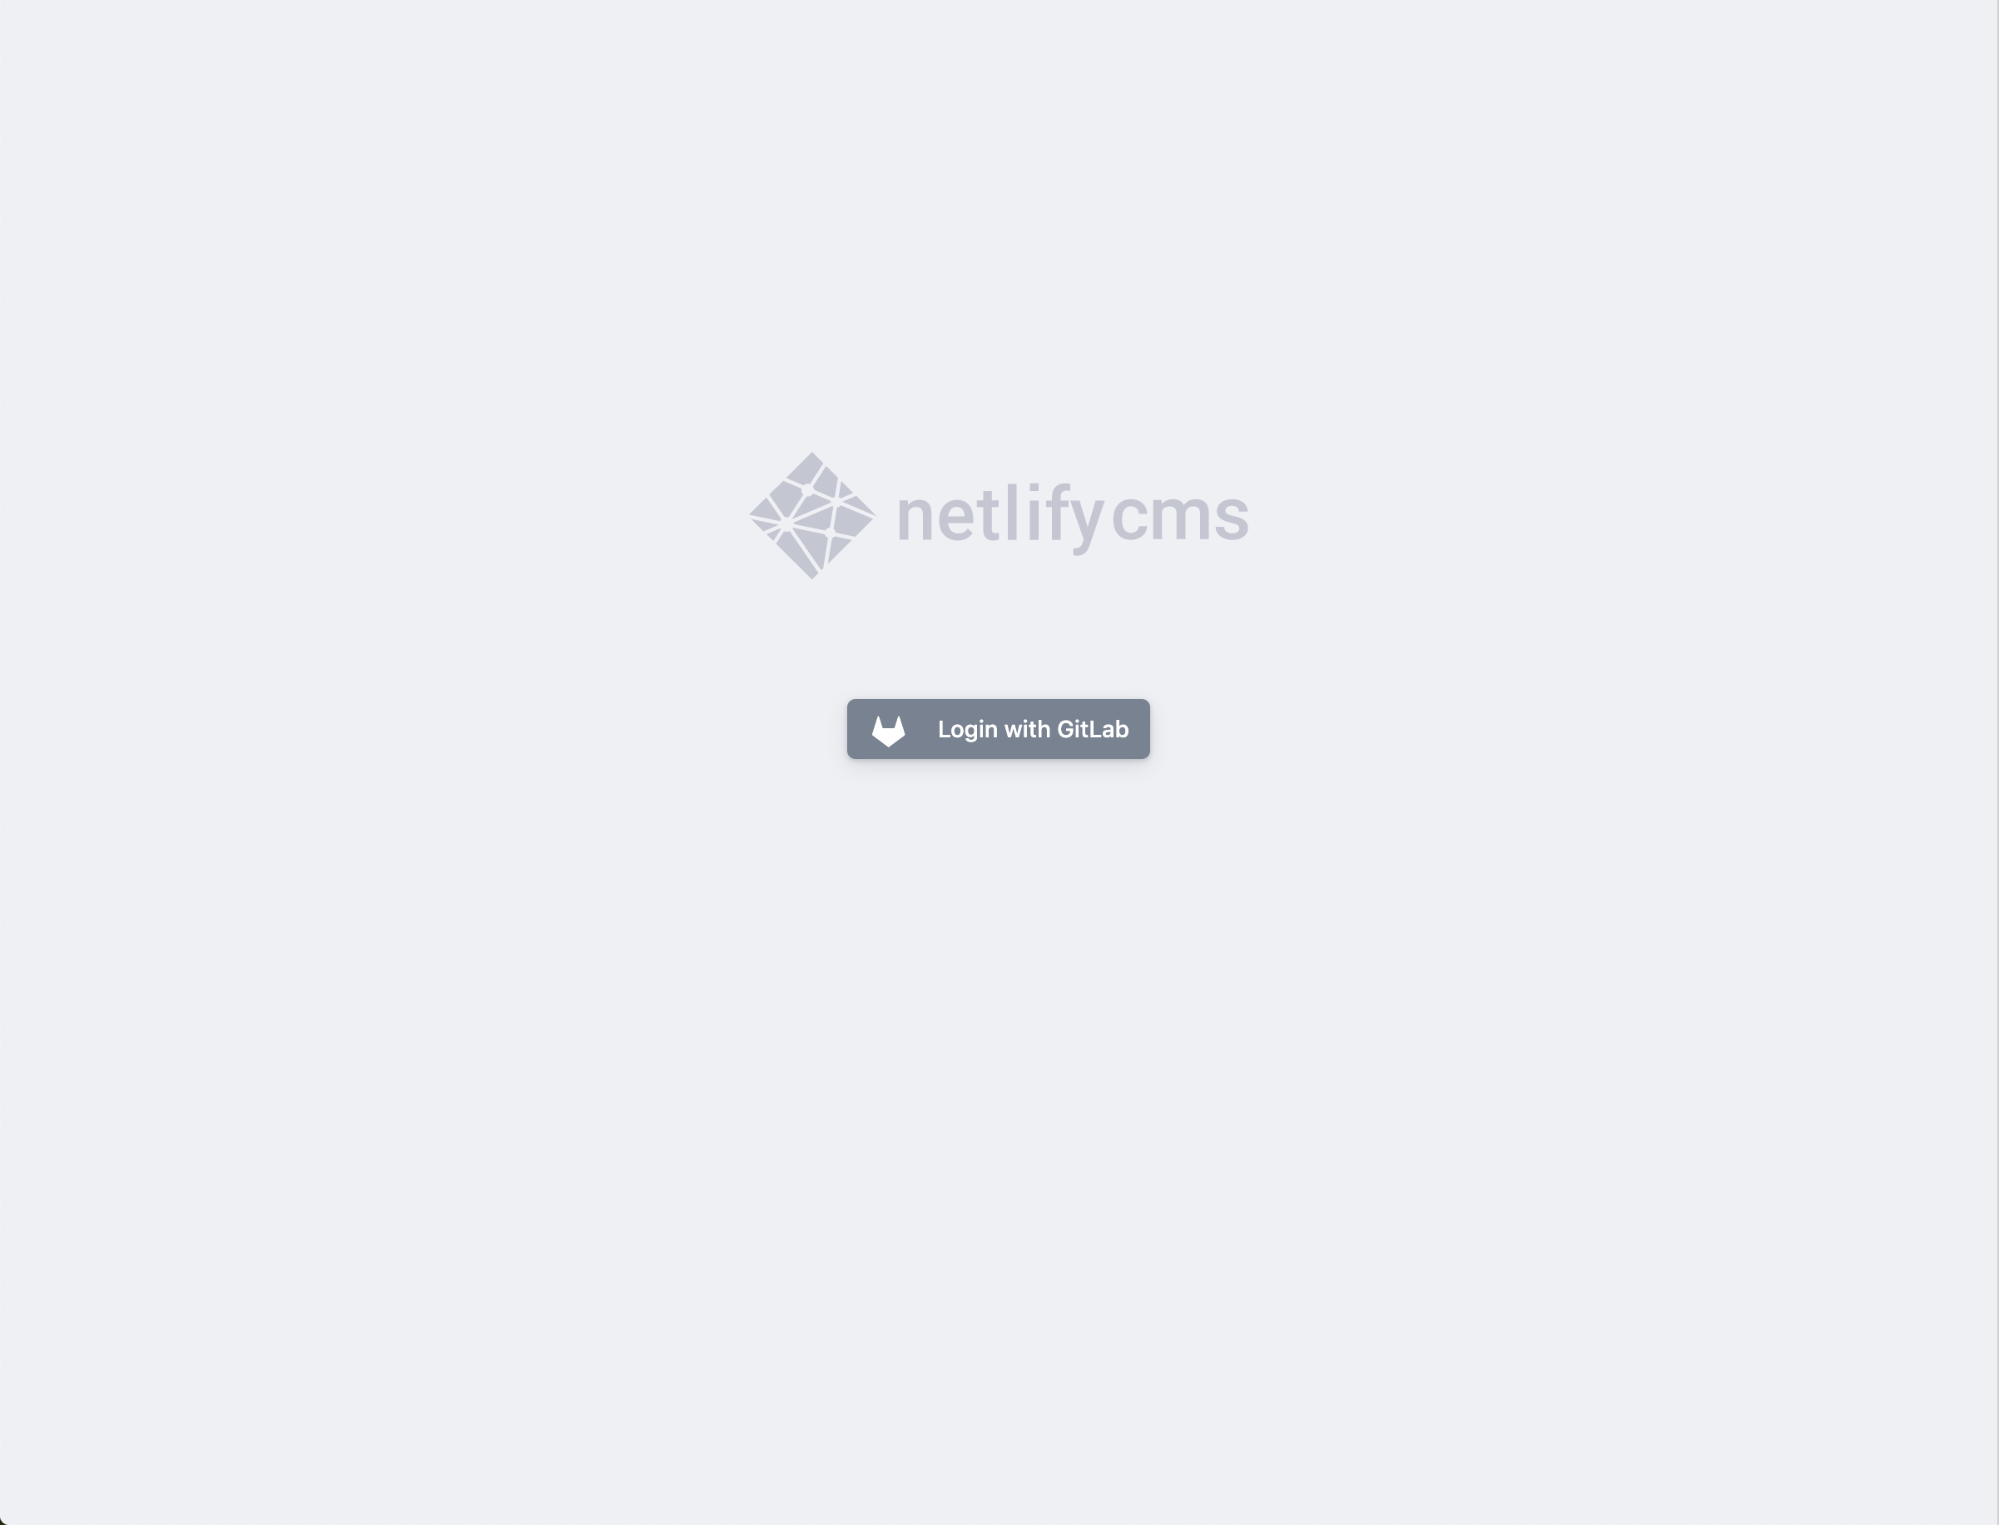 A screenshot shows a login prompt in Netlify CMS